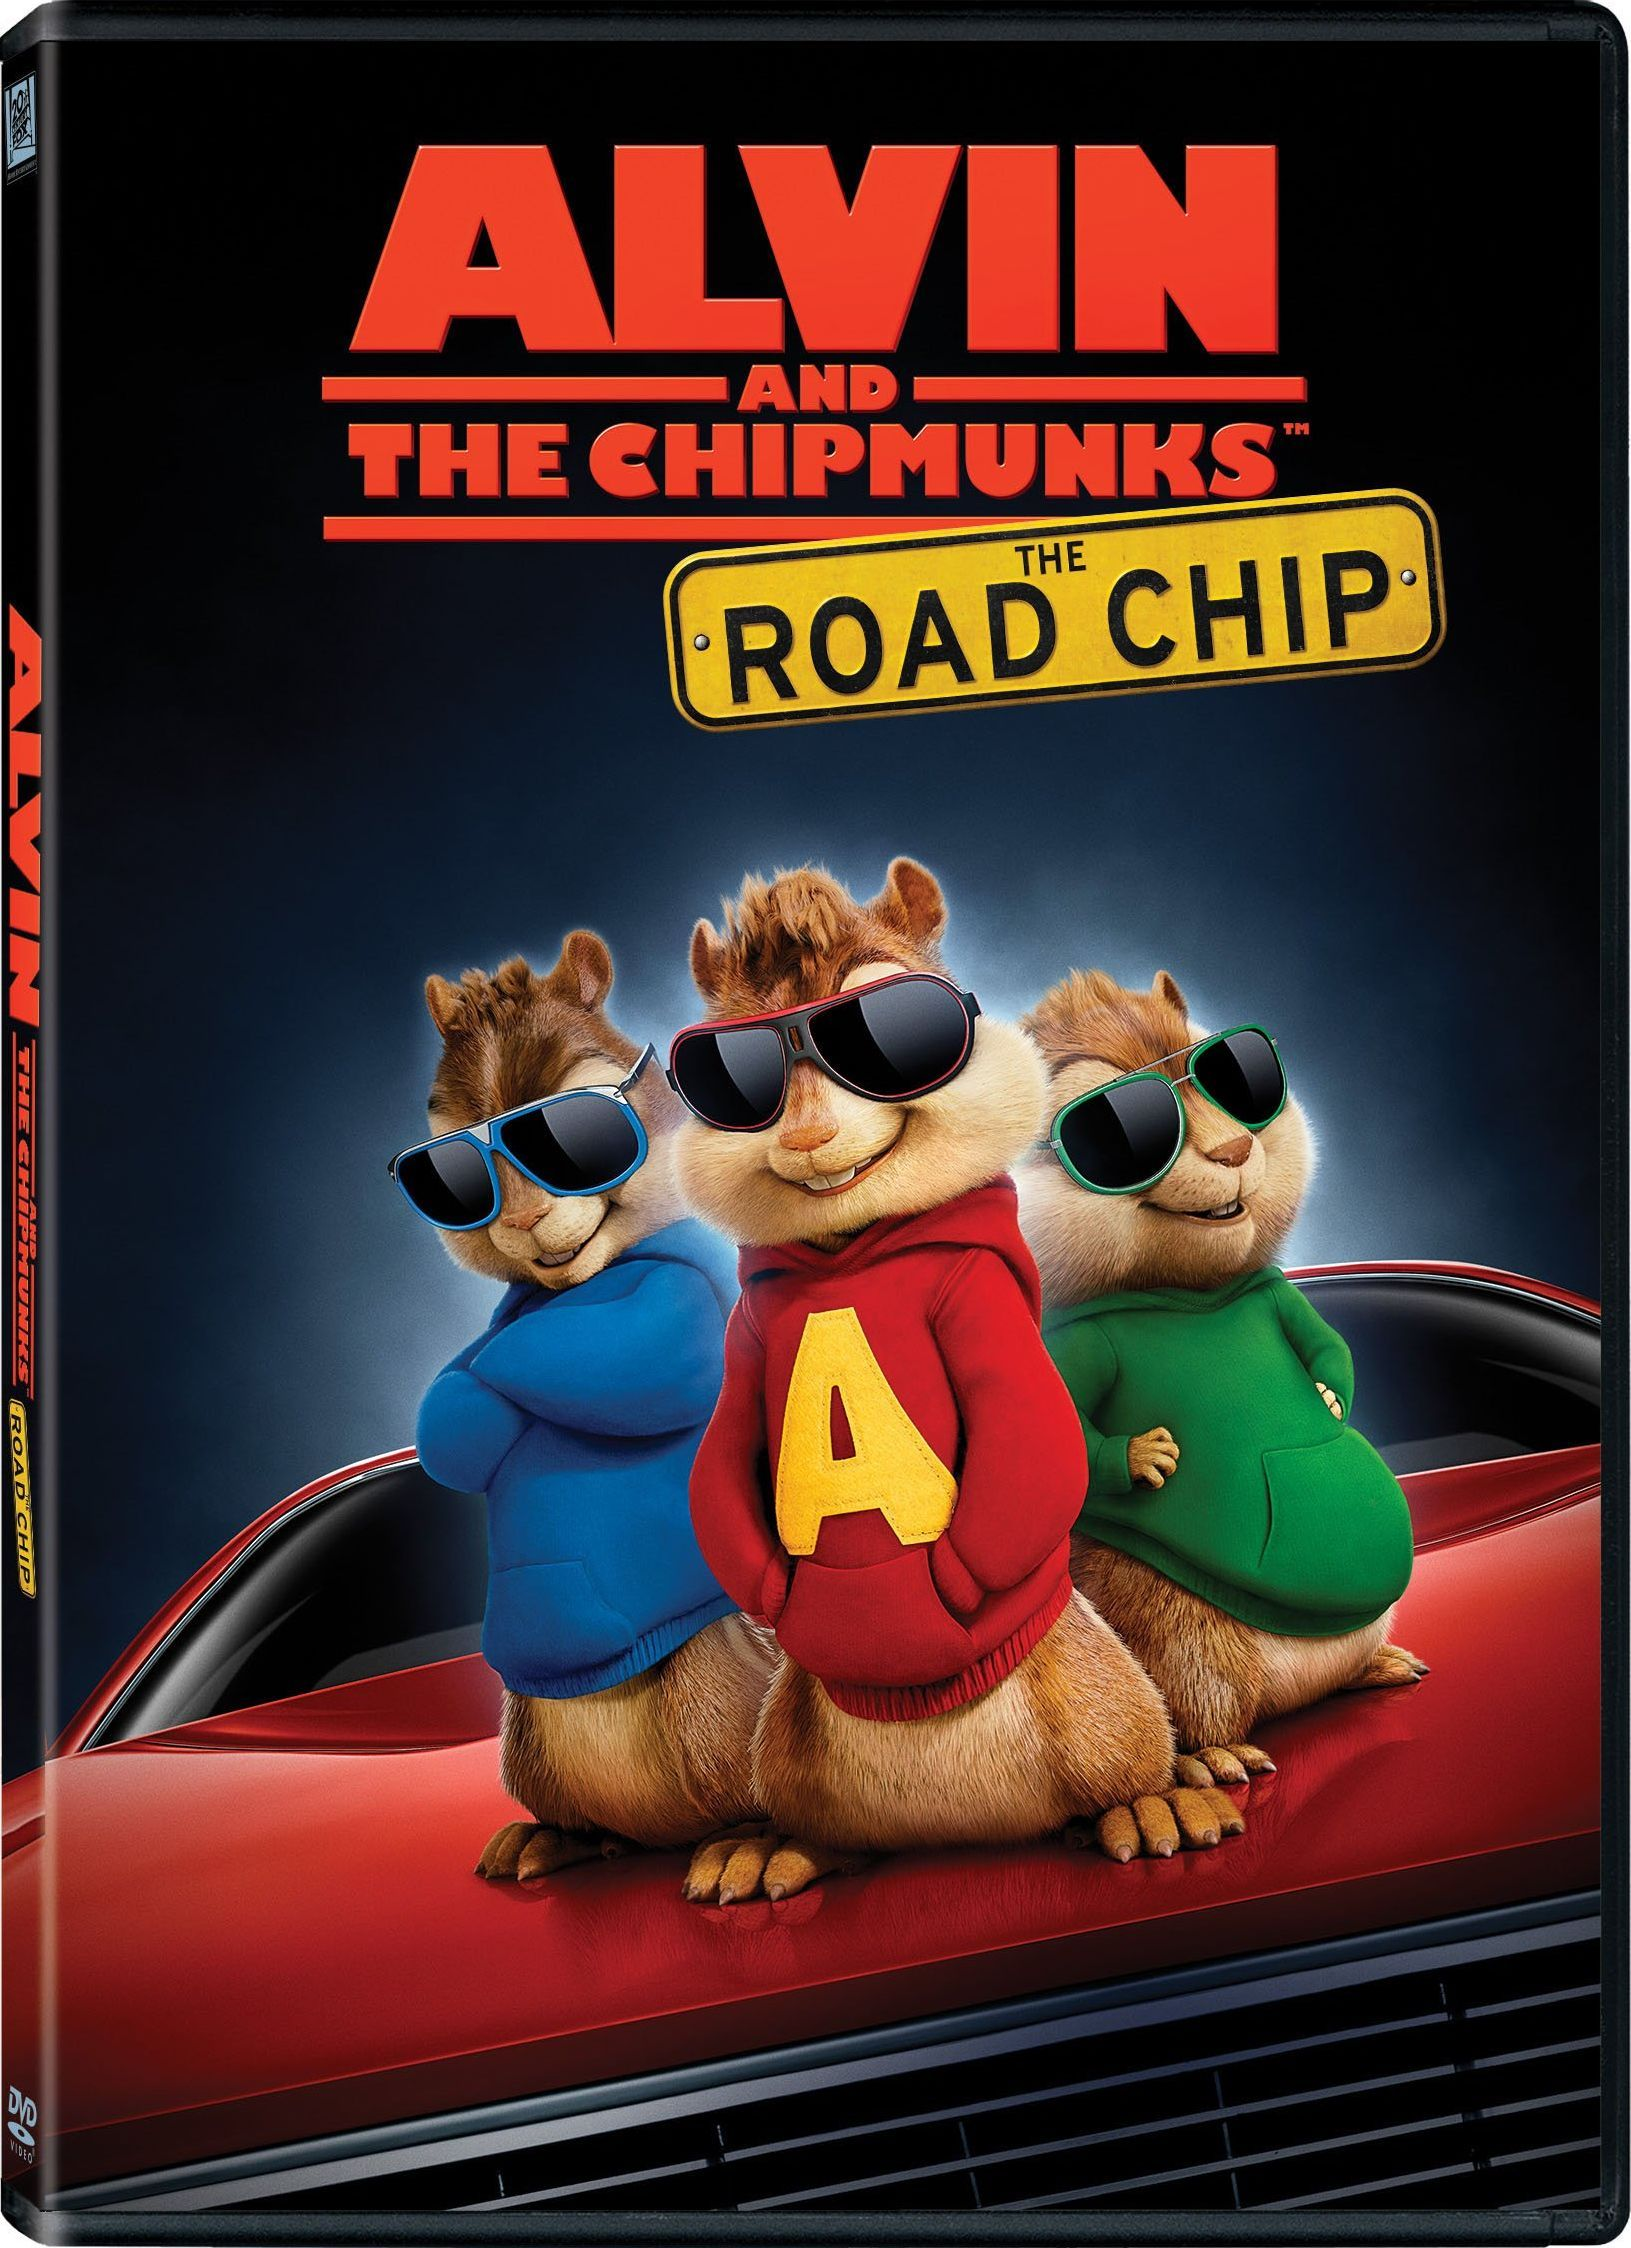 Alvin And The Chipmunks The Road Chip Dvd Release Date March 15 2016 Ardillas Compras Peliculas